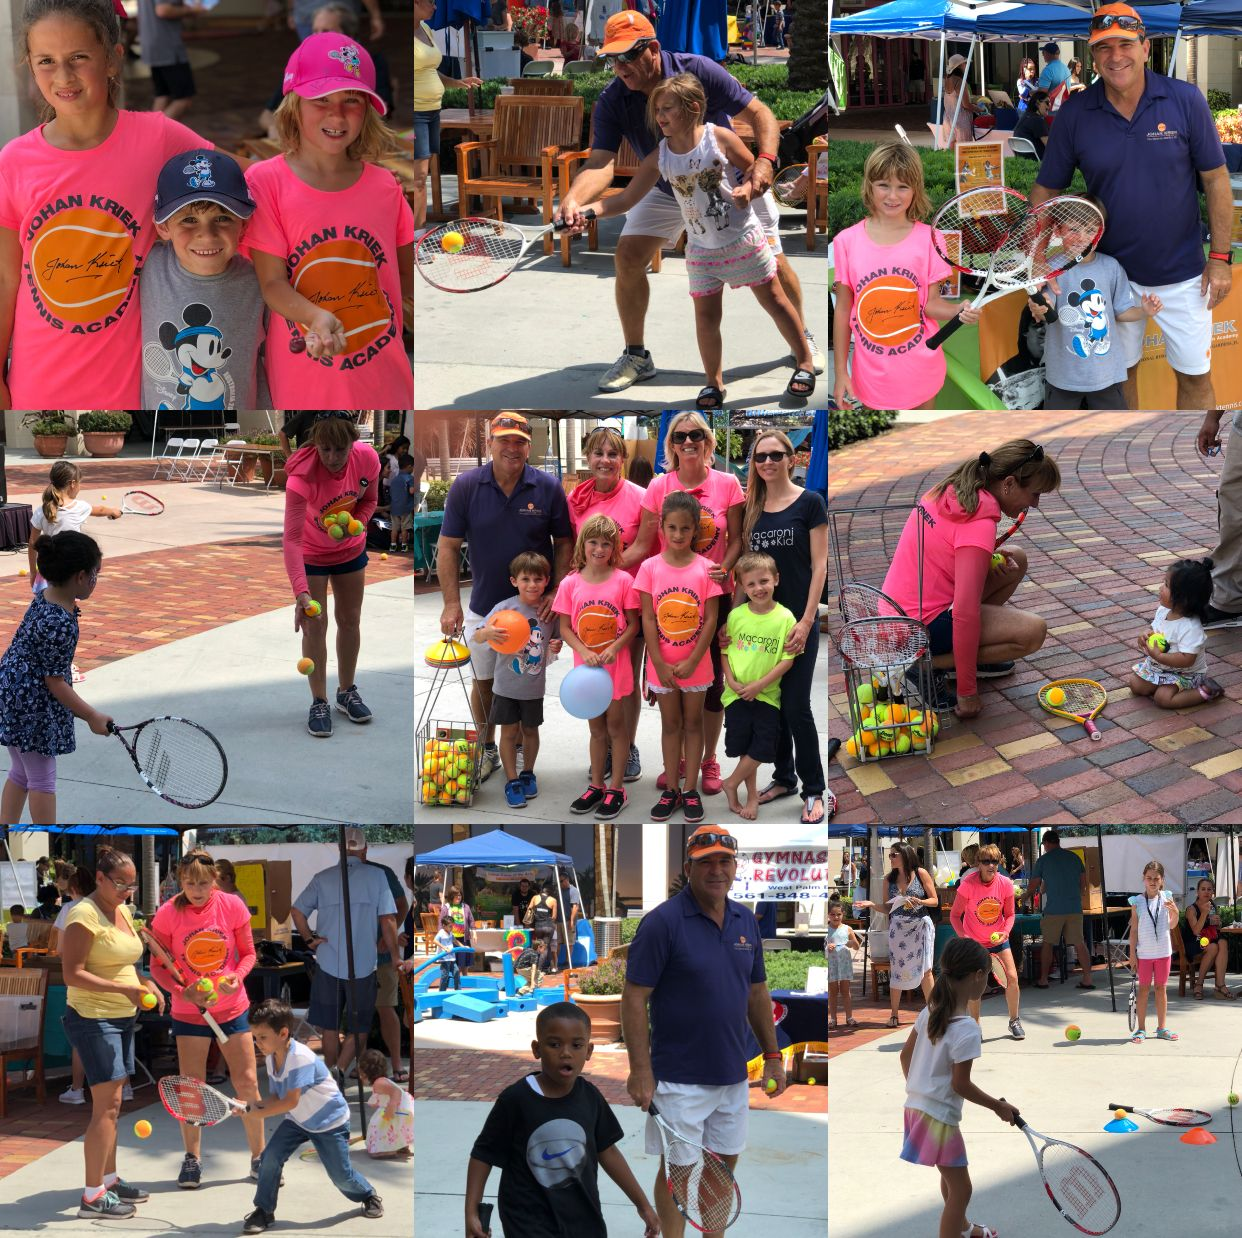 Thank You Macaroni Kid For A Great Summer Camp Expo